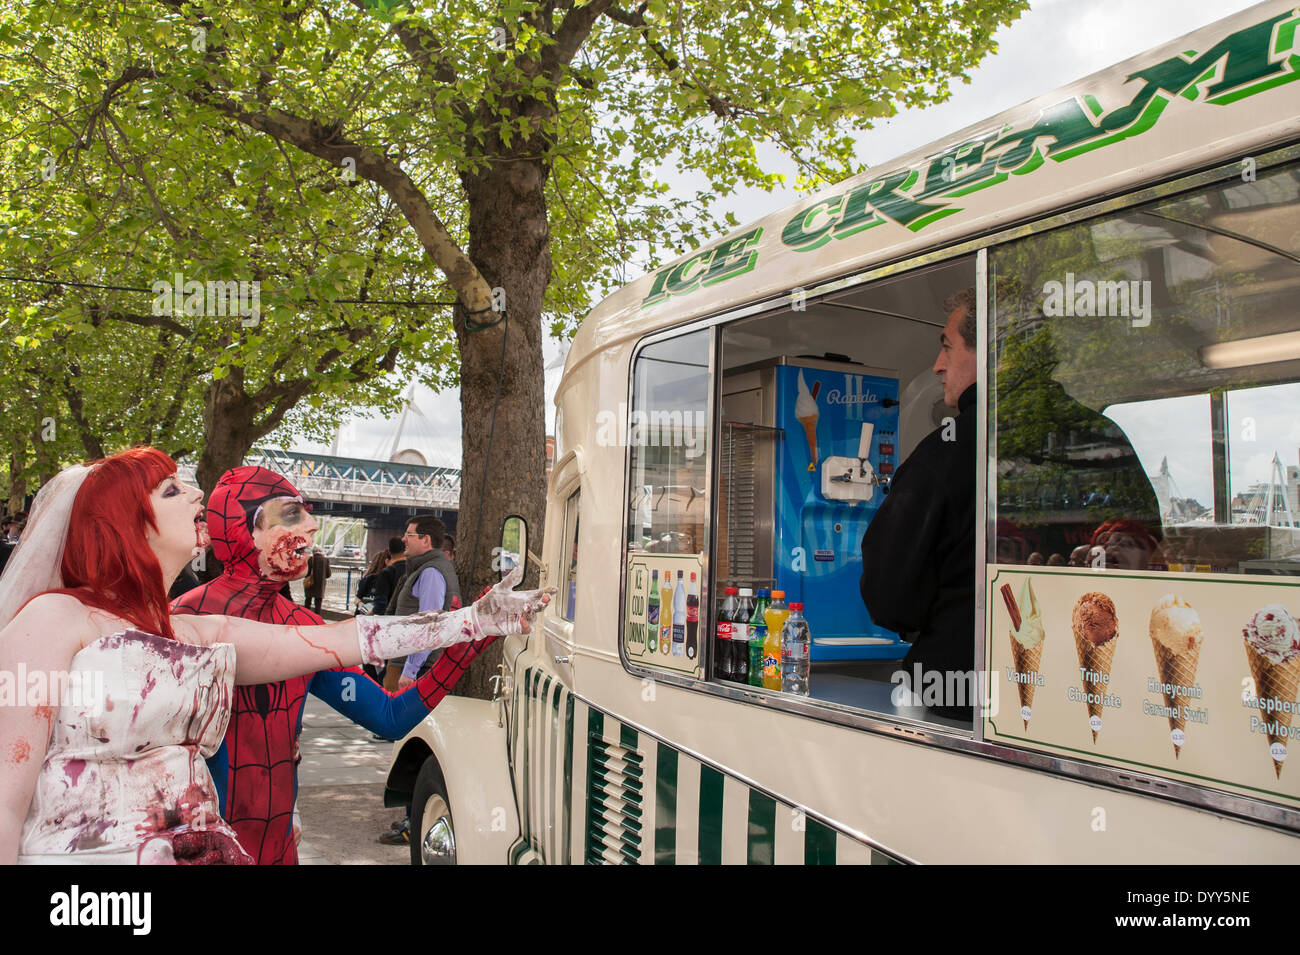 London, 27 April 2014 - people dressed as their favourite sci-fi characters take part in the Sci-Fi London 2014 costume parade starting at Somerset House and finishing at the BFI on the South Bank.  Zombie bride and zombie Spider-Man attempt to buy an ice cream.    Credit:  Stephen Chung/Alamy Live News - Stock Image